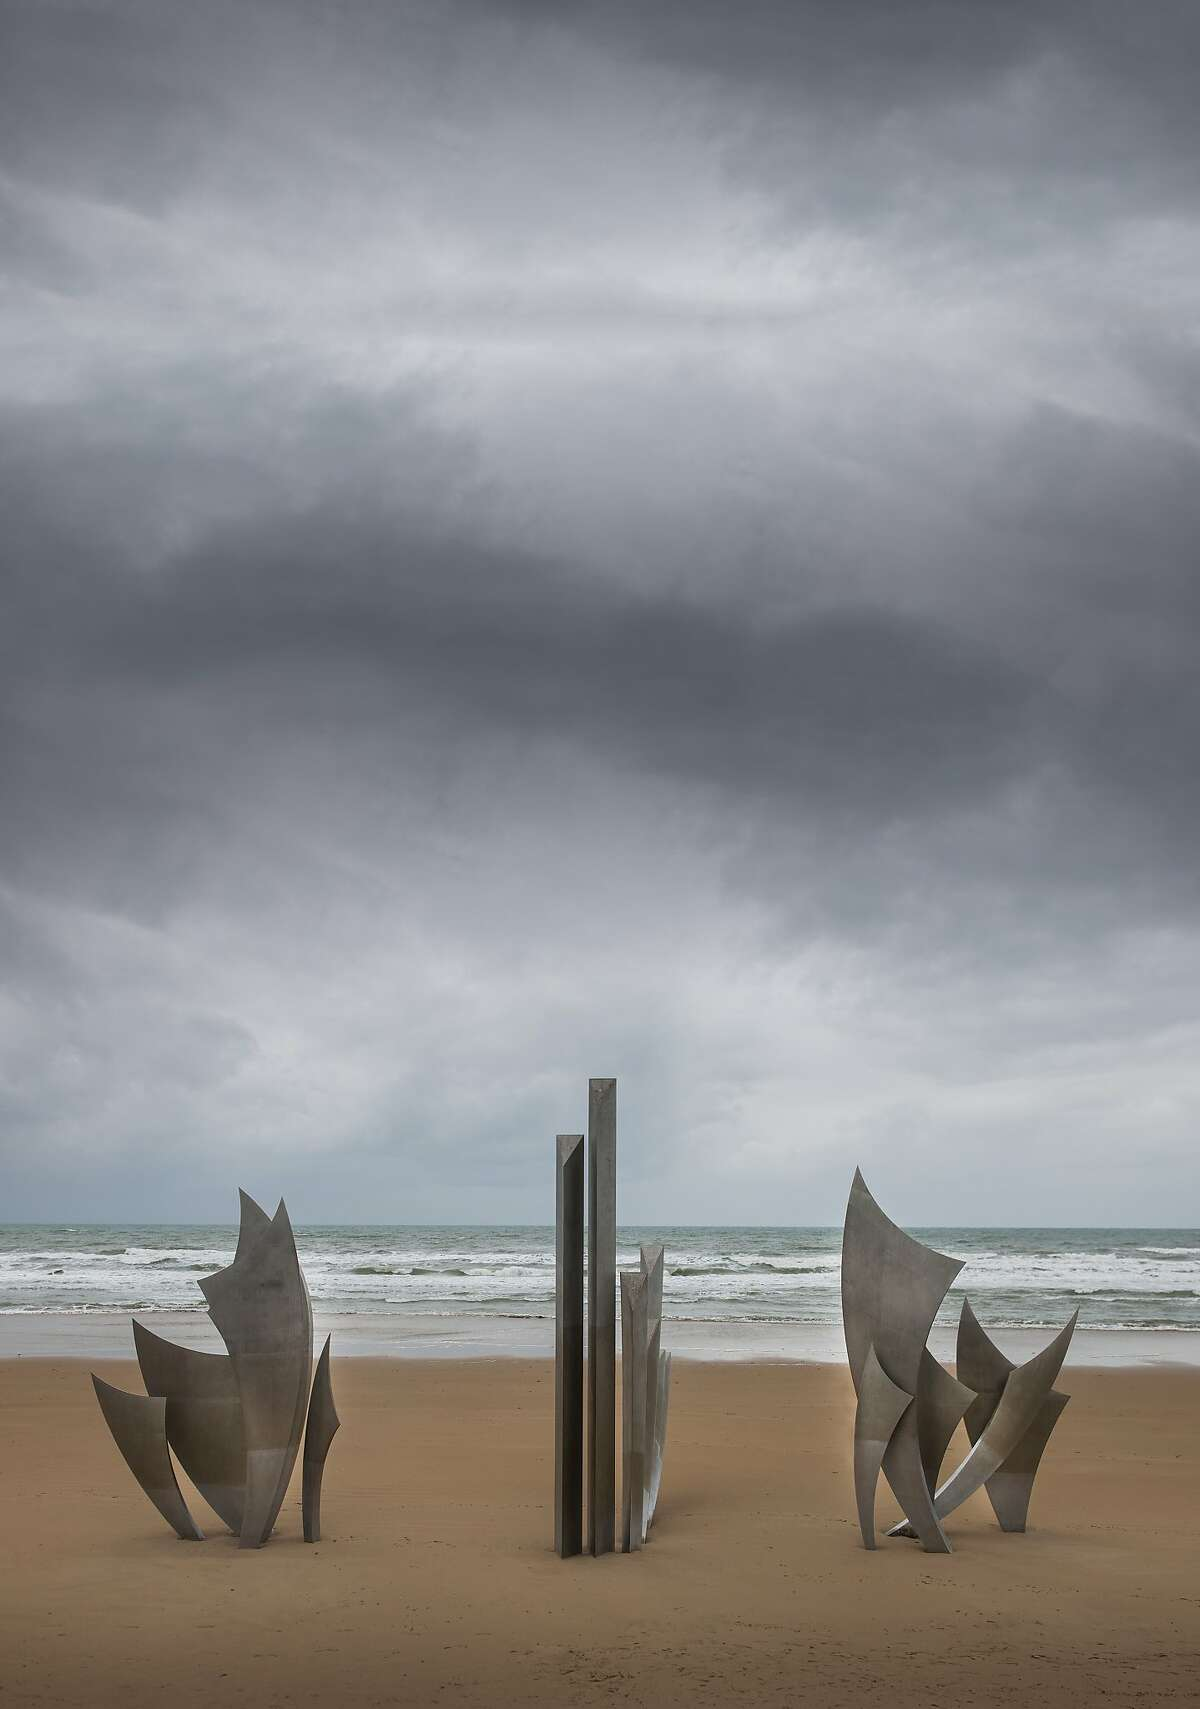 """The sculpture """"Les Braves"""" by Anilore Banon honoring the soldiers that landed on Omaha Beach on D Day and the days that followed, The sculpture has three elements, Wings of Hope, Rise, Freedom! and Wings of Fraternity. Sculpture - Les Braves - Omaha Beach"""